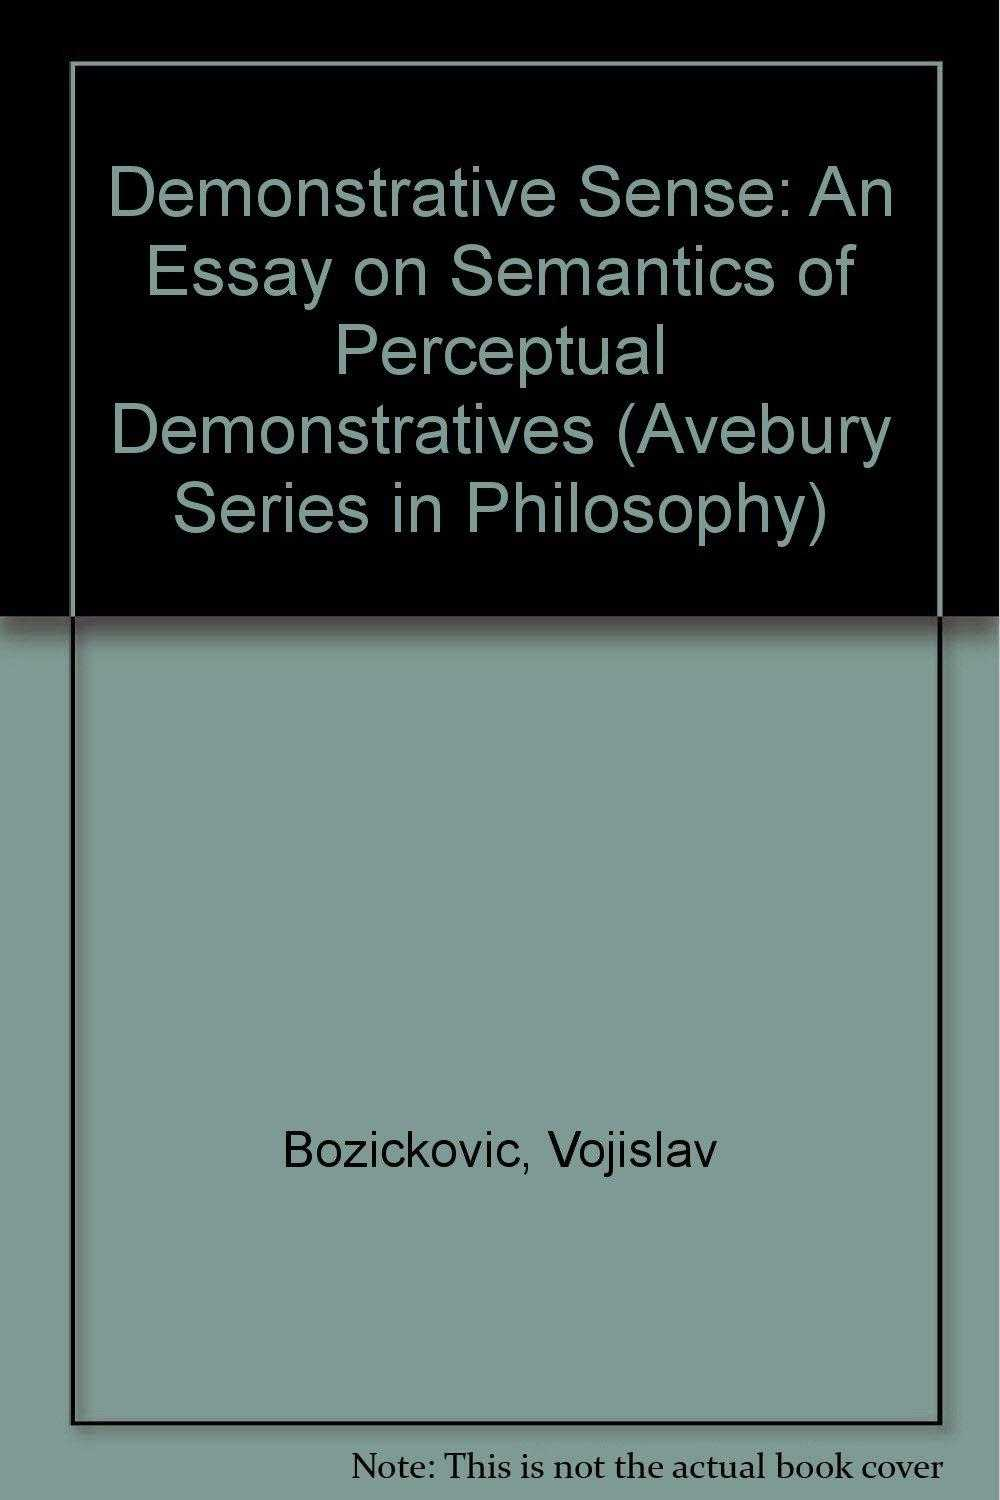 Demonstrative Sense: An Essay on Semantics of Perceptual Demonstratives (Aveb., Bozickovic, Vojislav